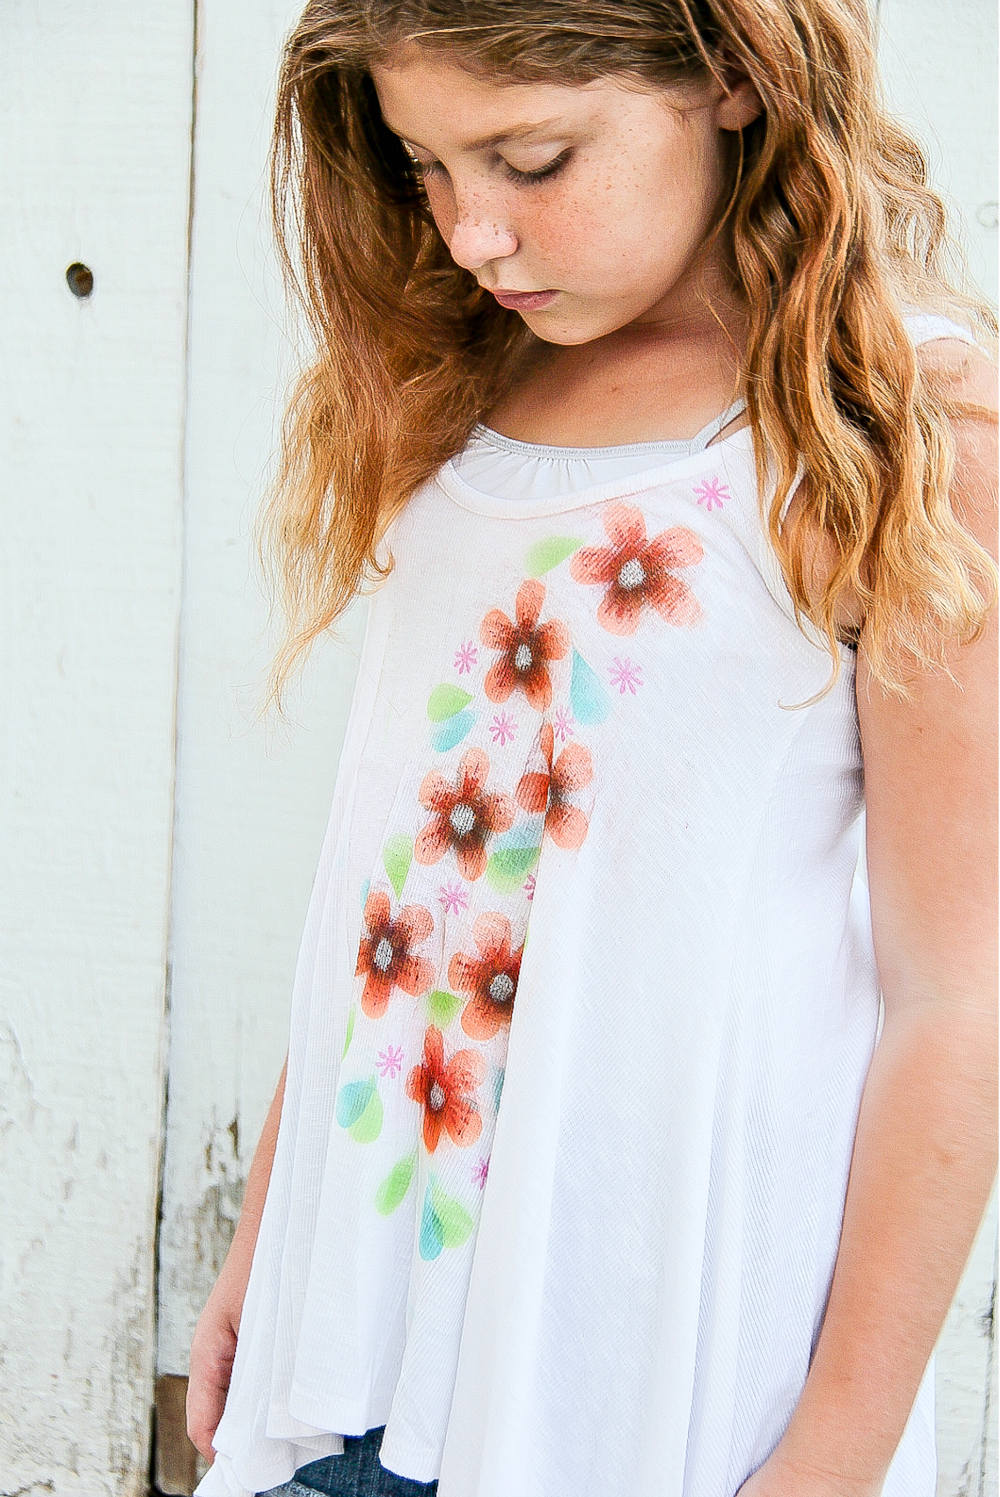 a girl wearing a white tank that has airbrush flowers on it